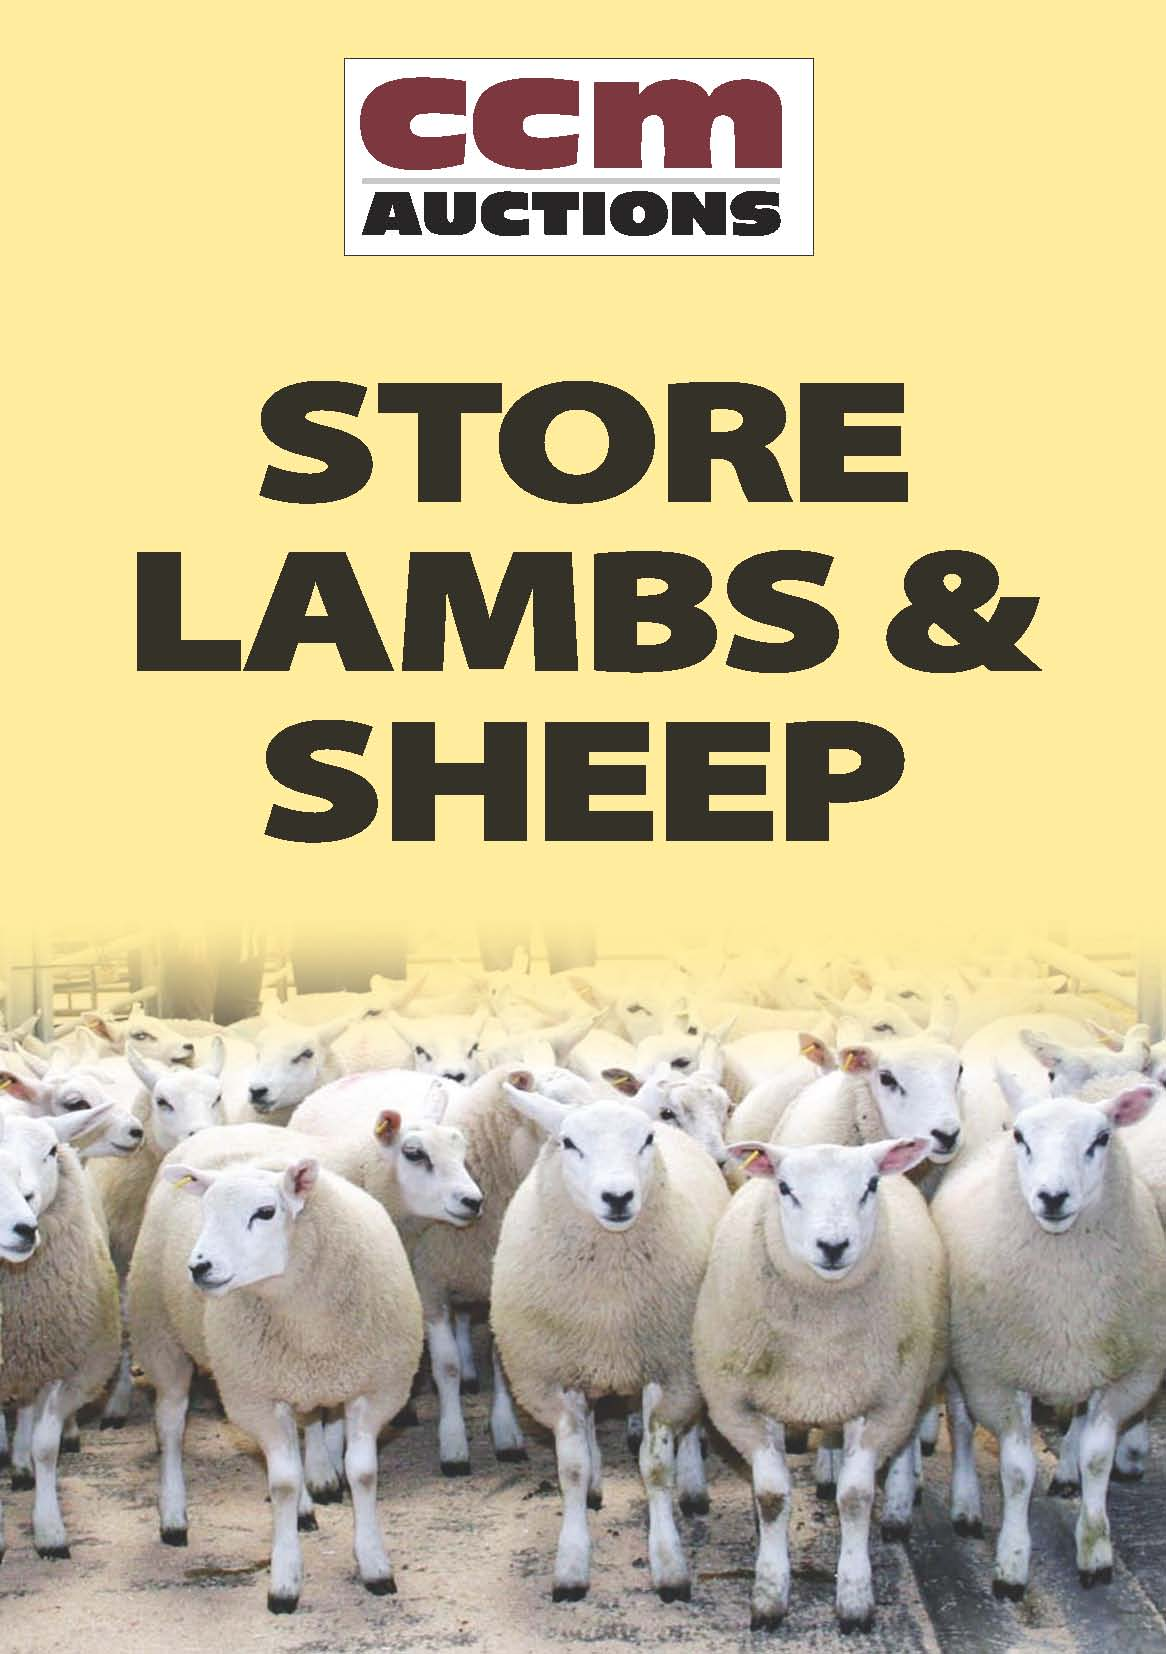 STORE LAMBS & BREEDING SHEEP - WEDNESDAY 8TH AUGUST 2018